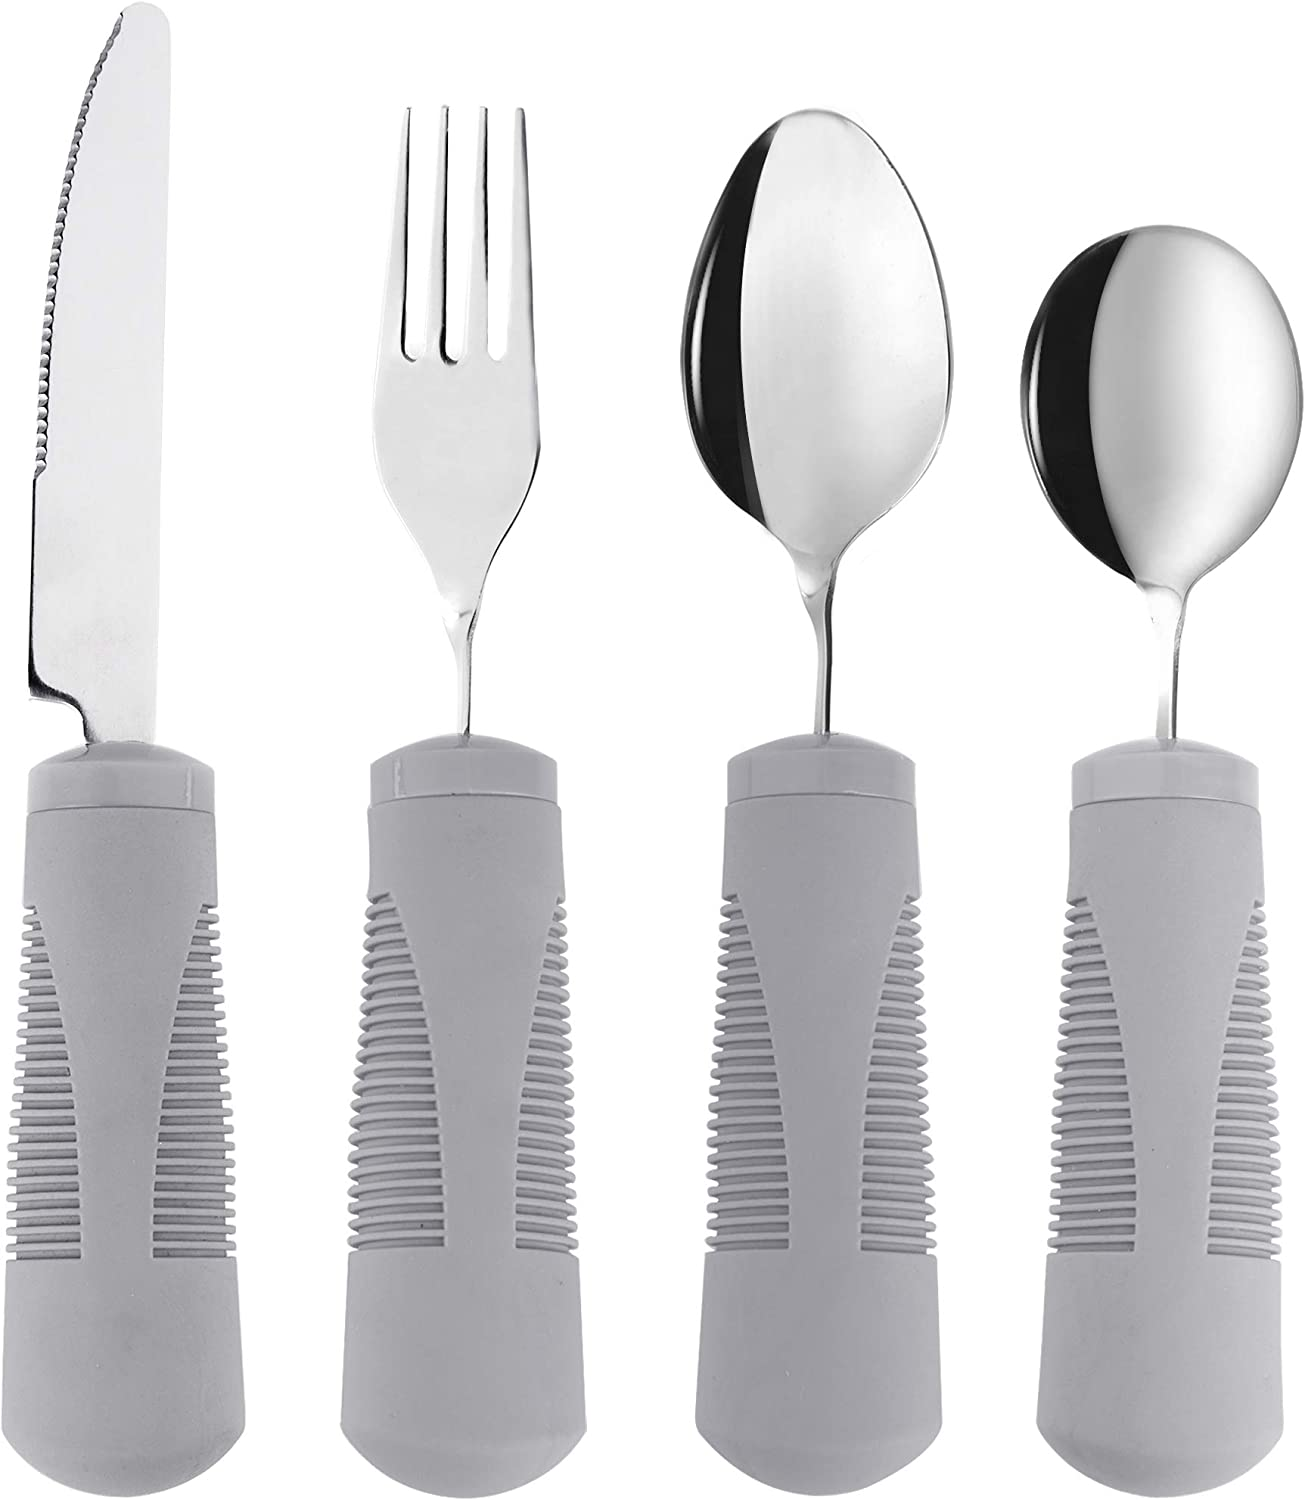 Adaptive Utensils (4-Piece Kitchen Set) Wide, Weighted, Non-Slip Handles for Hand Tremors, Arthritis, Parkinson's or Elderly use - Stainless Steel Knife, Fork, Spoons (Gray Weighted Bendable): Health & Personal Care